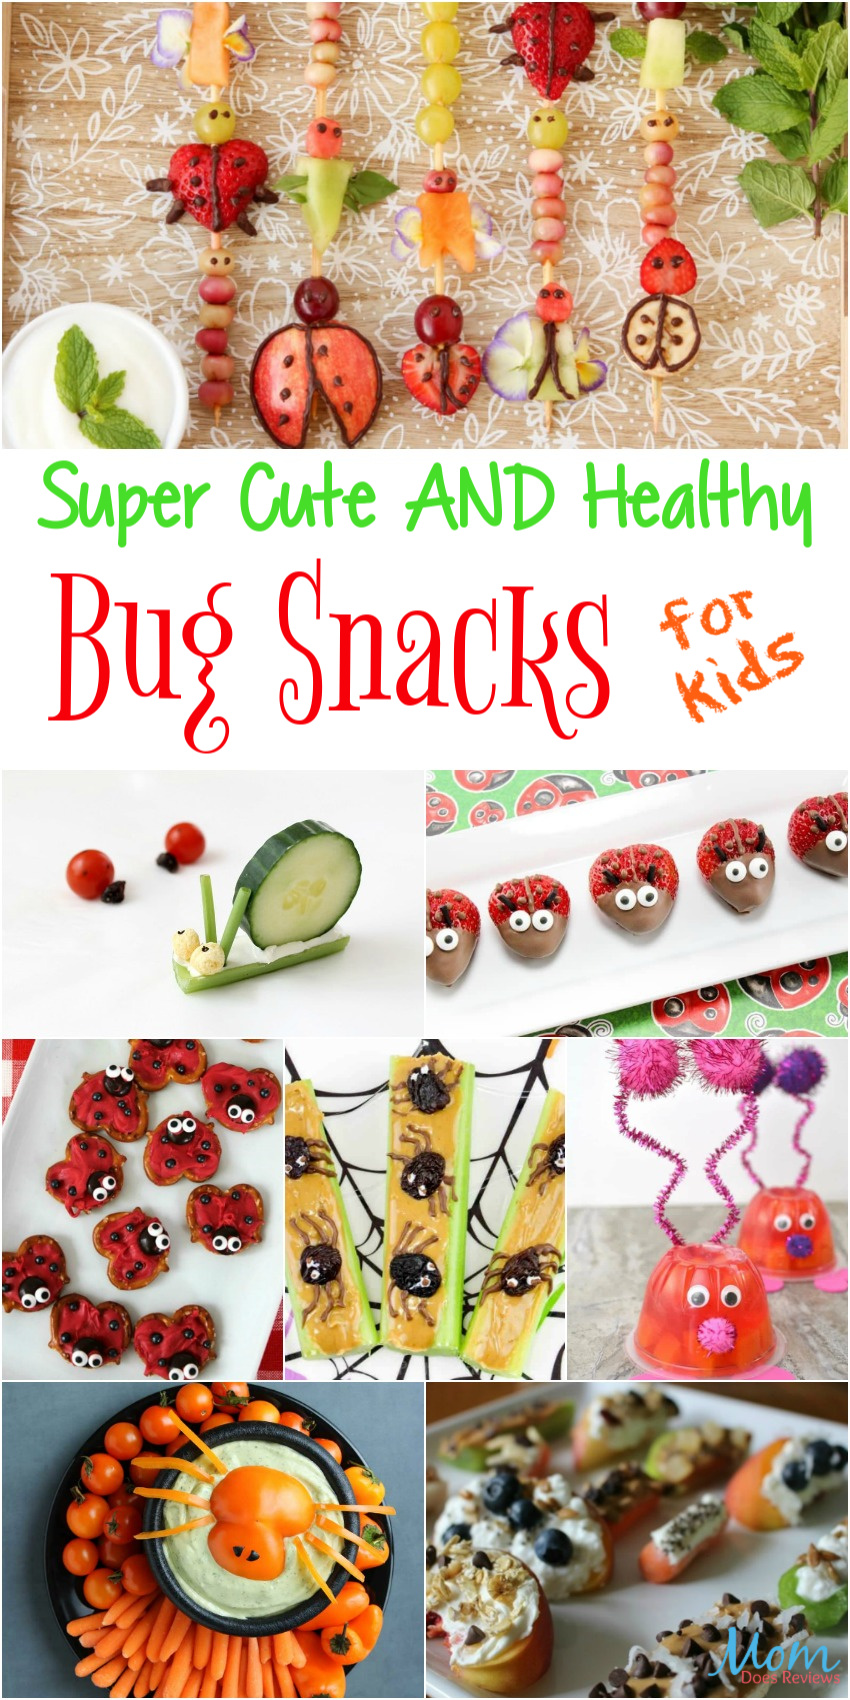 Super Cute AND Healthy Bug Snacks Your Kids will Love #funfood #snacks #recipes